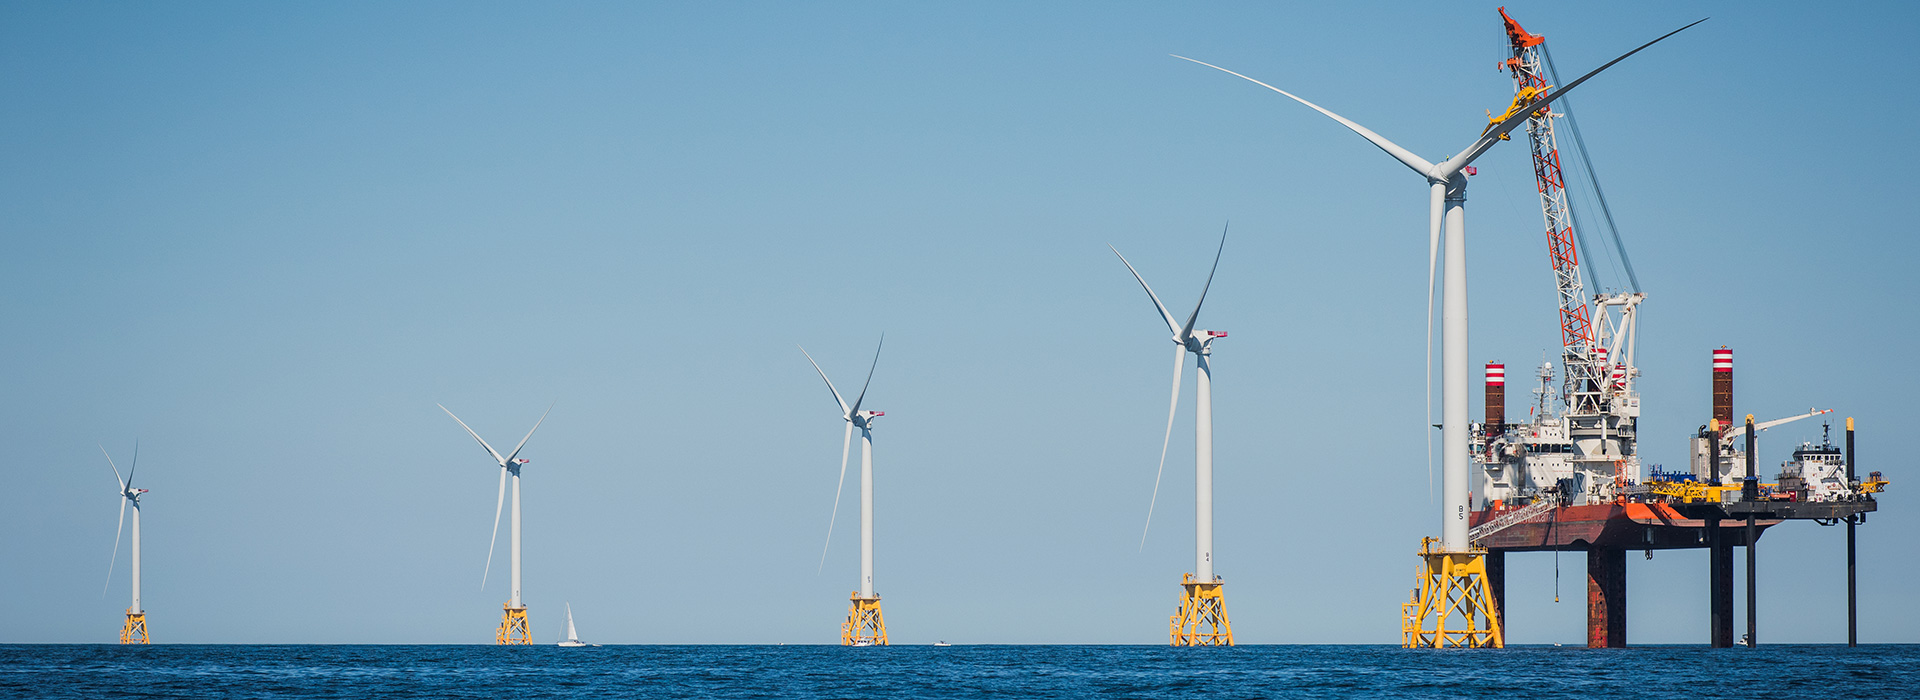 offshore-power-1920x700